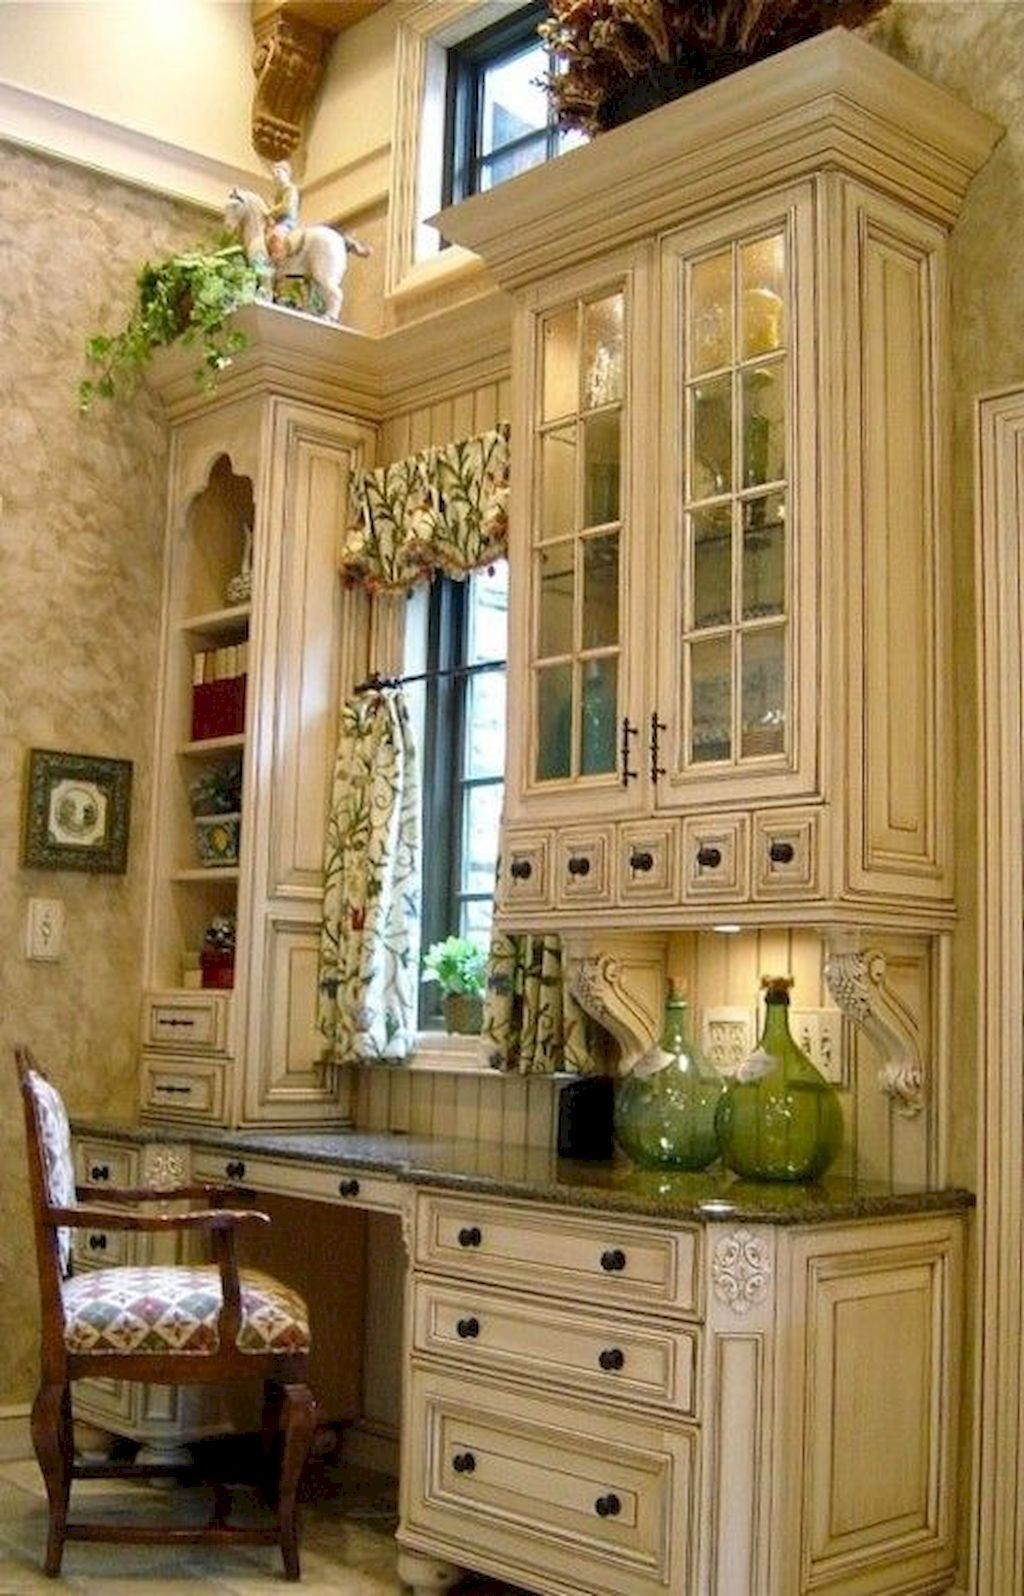 70 Incredible French Country Kitchen Design Ideas #countrykitchens